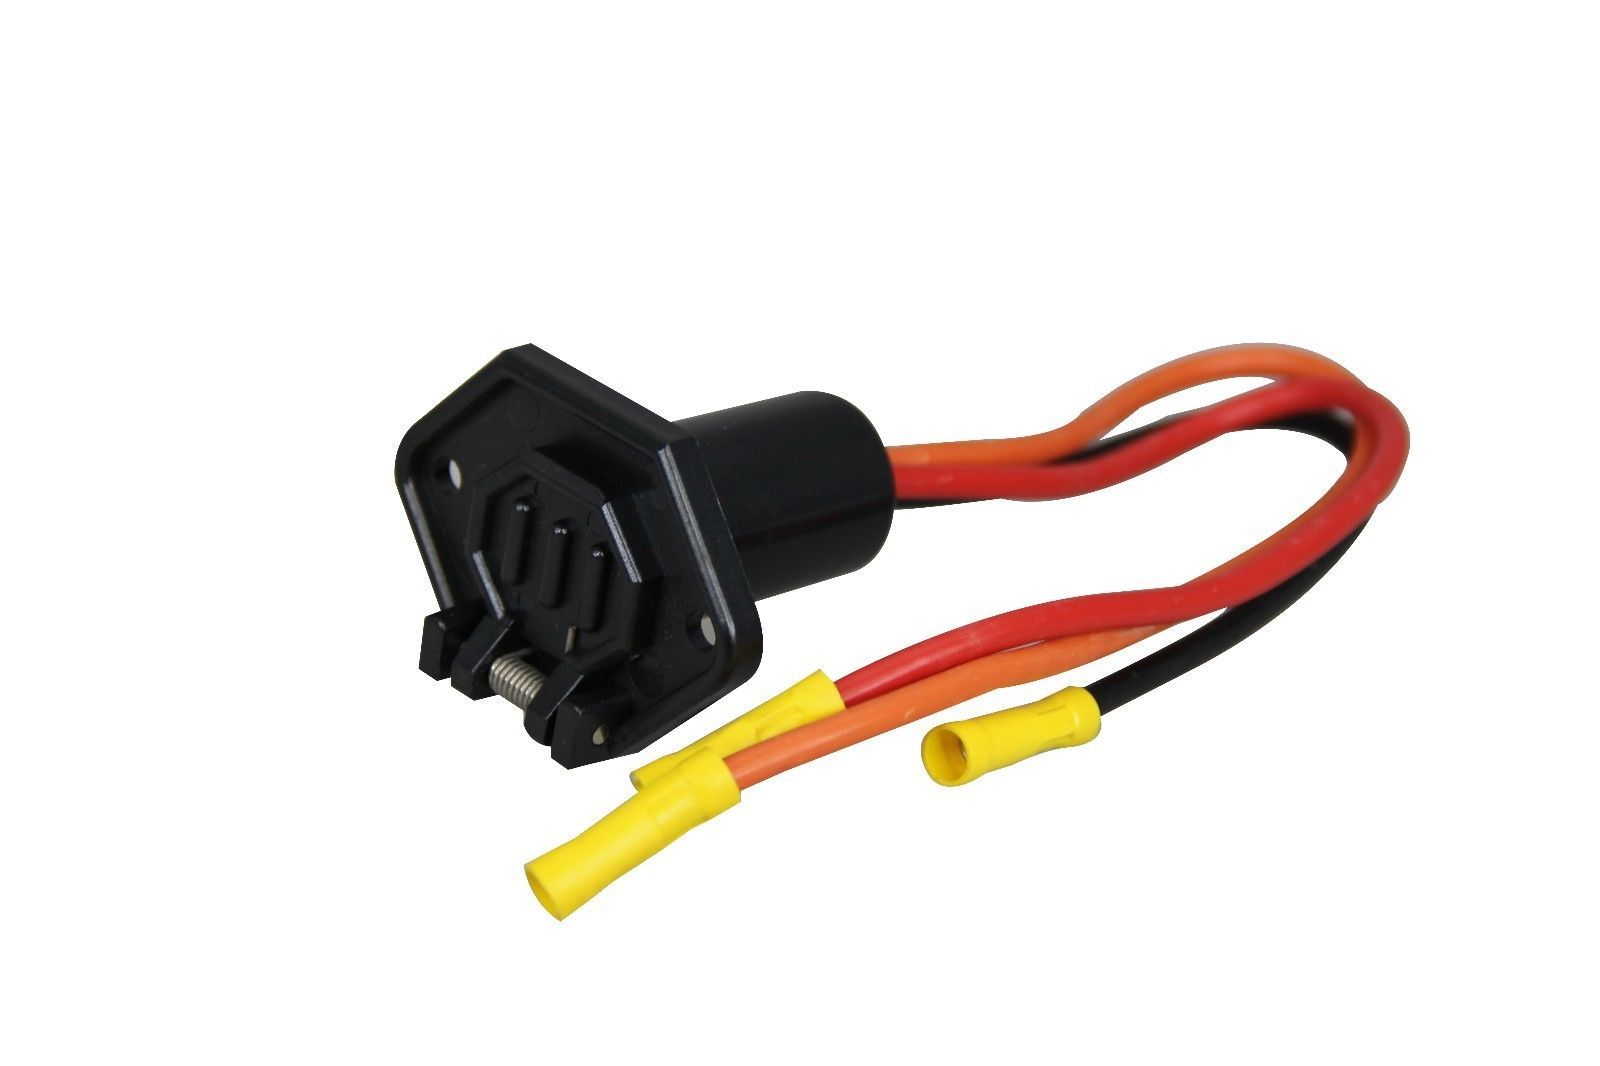 Primary image for Pactrade Marine Boat Trolling Motor Female Plug Connector 3-Wire 10 Gauge 12-24V